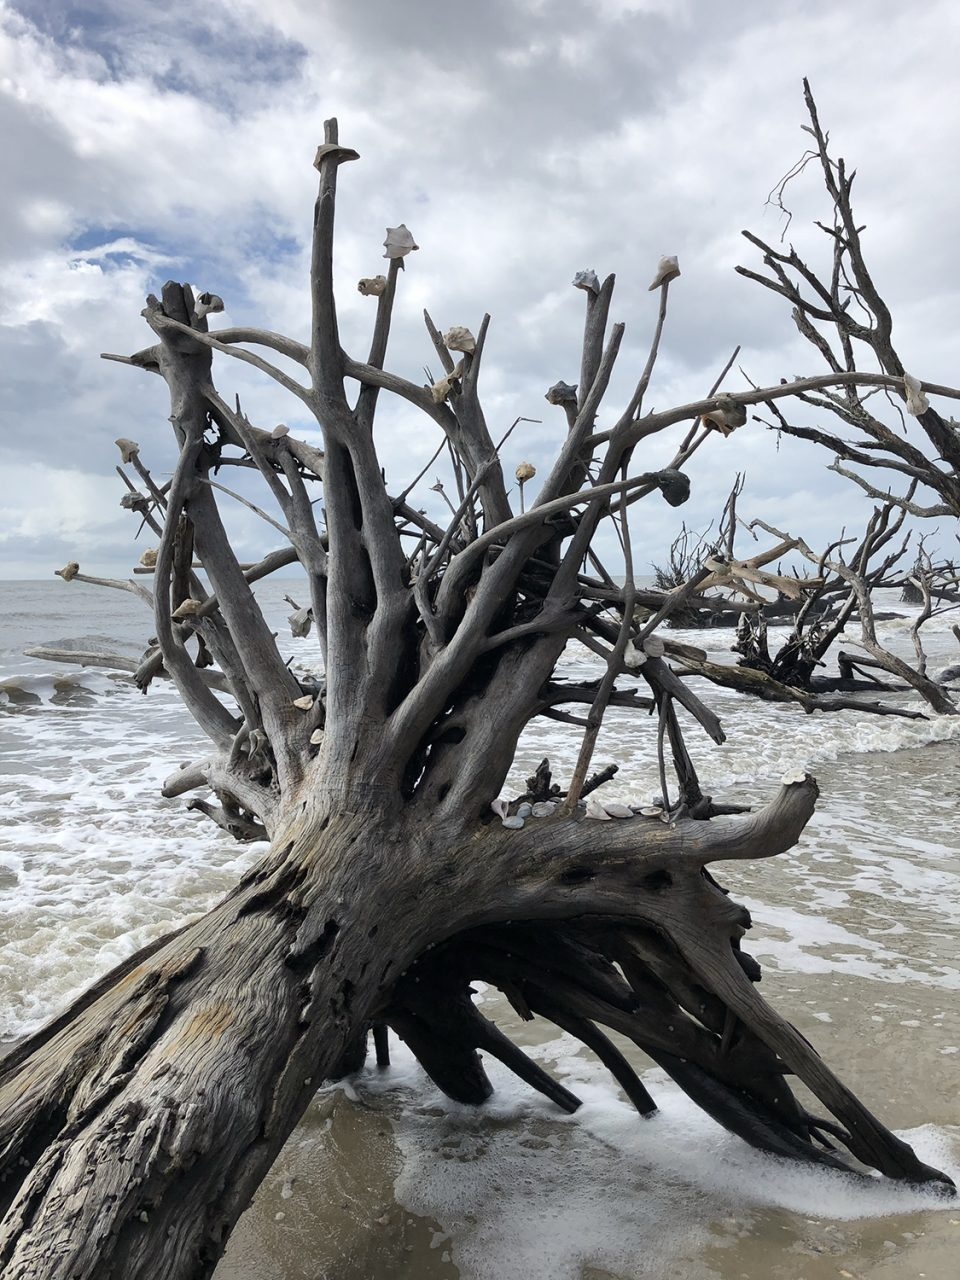 Fallen tree with shells on its roots on the driftwood beach at Pockoy Island, part of the Botany Bay site.